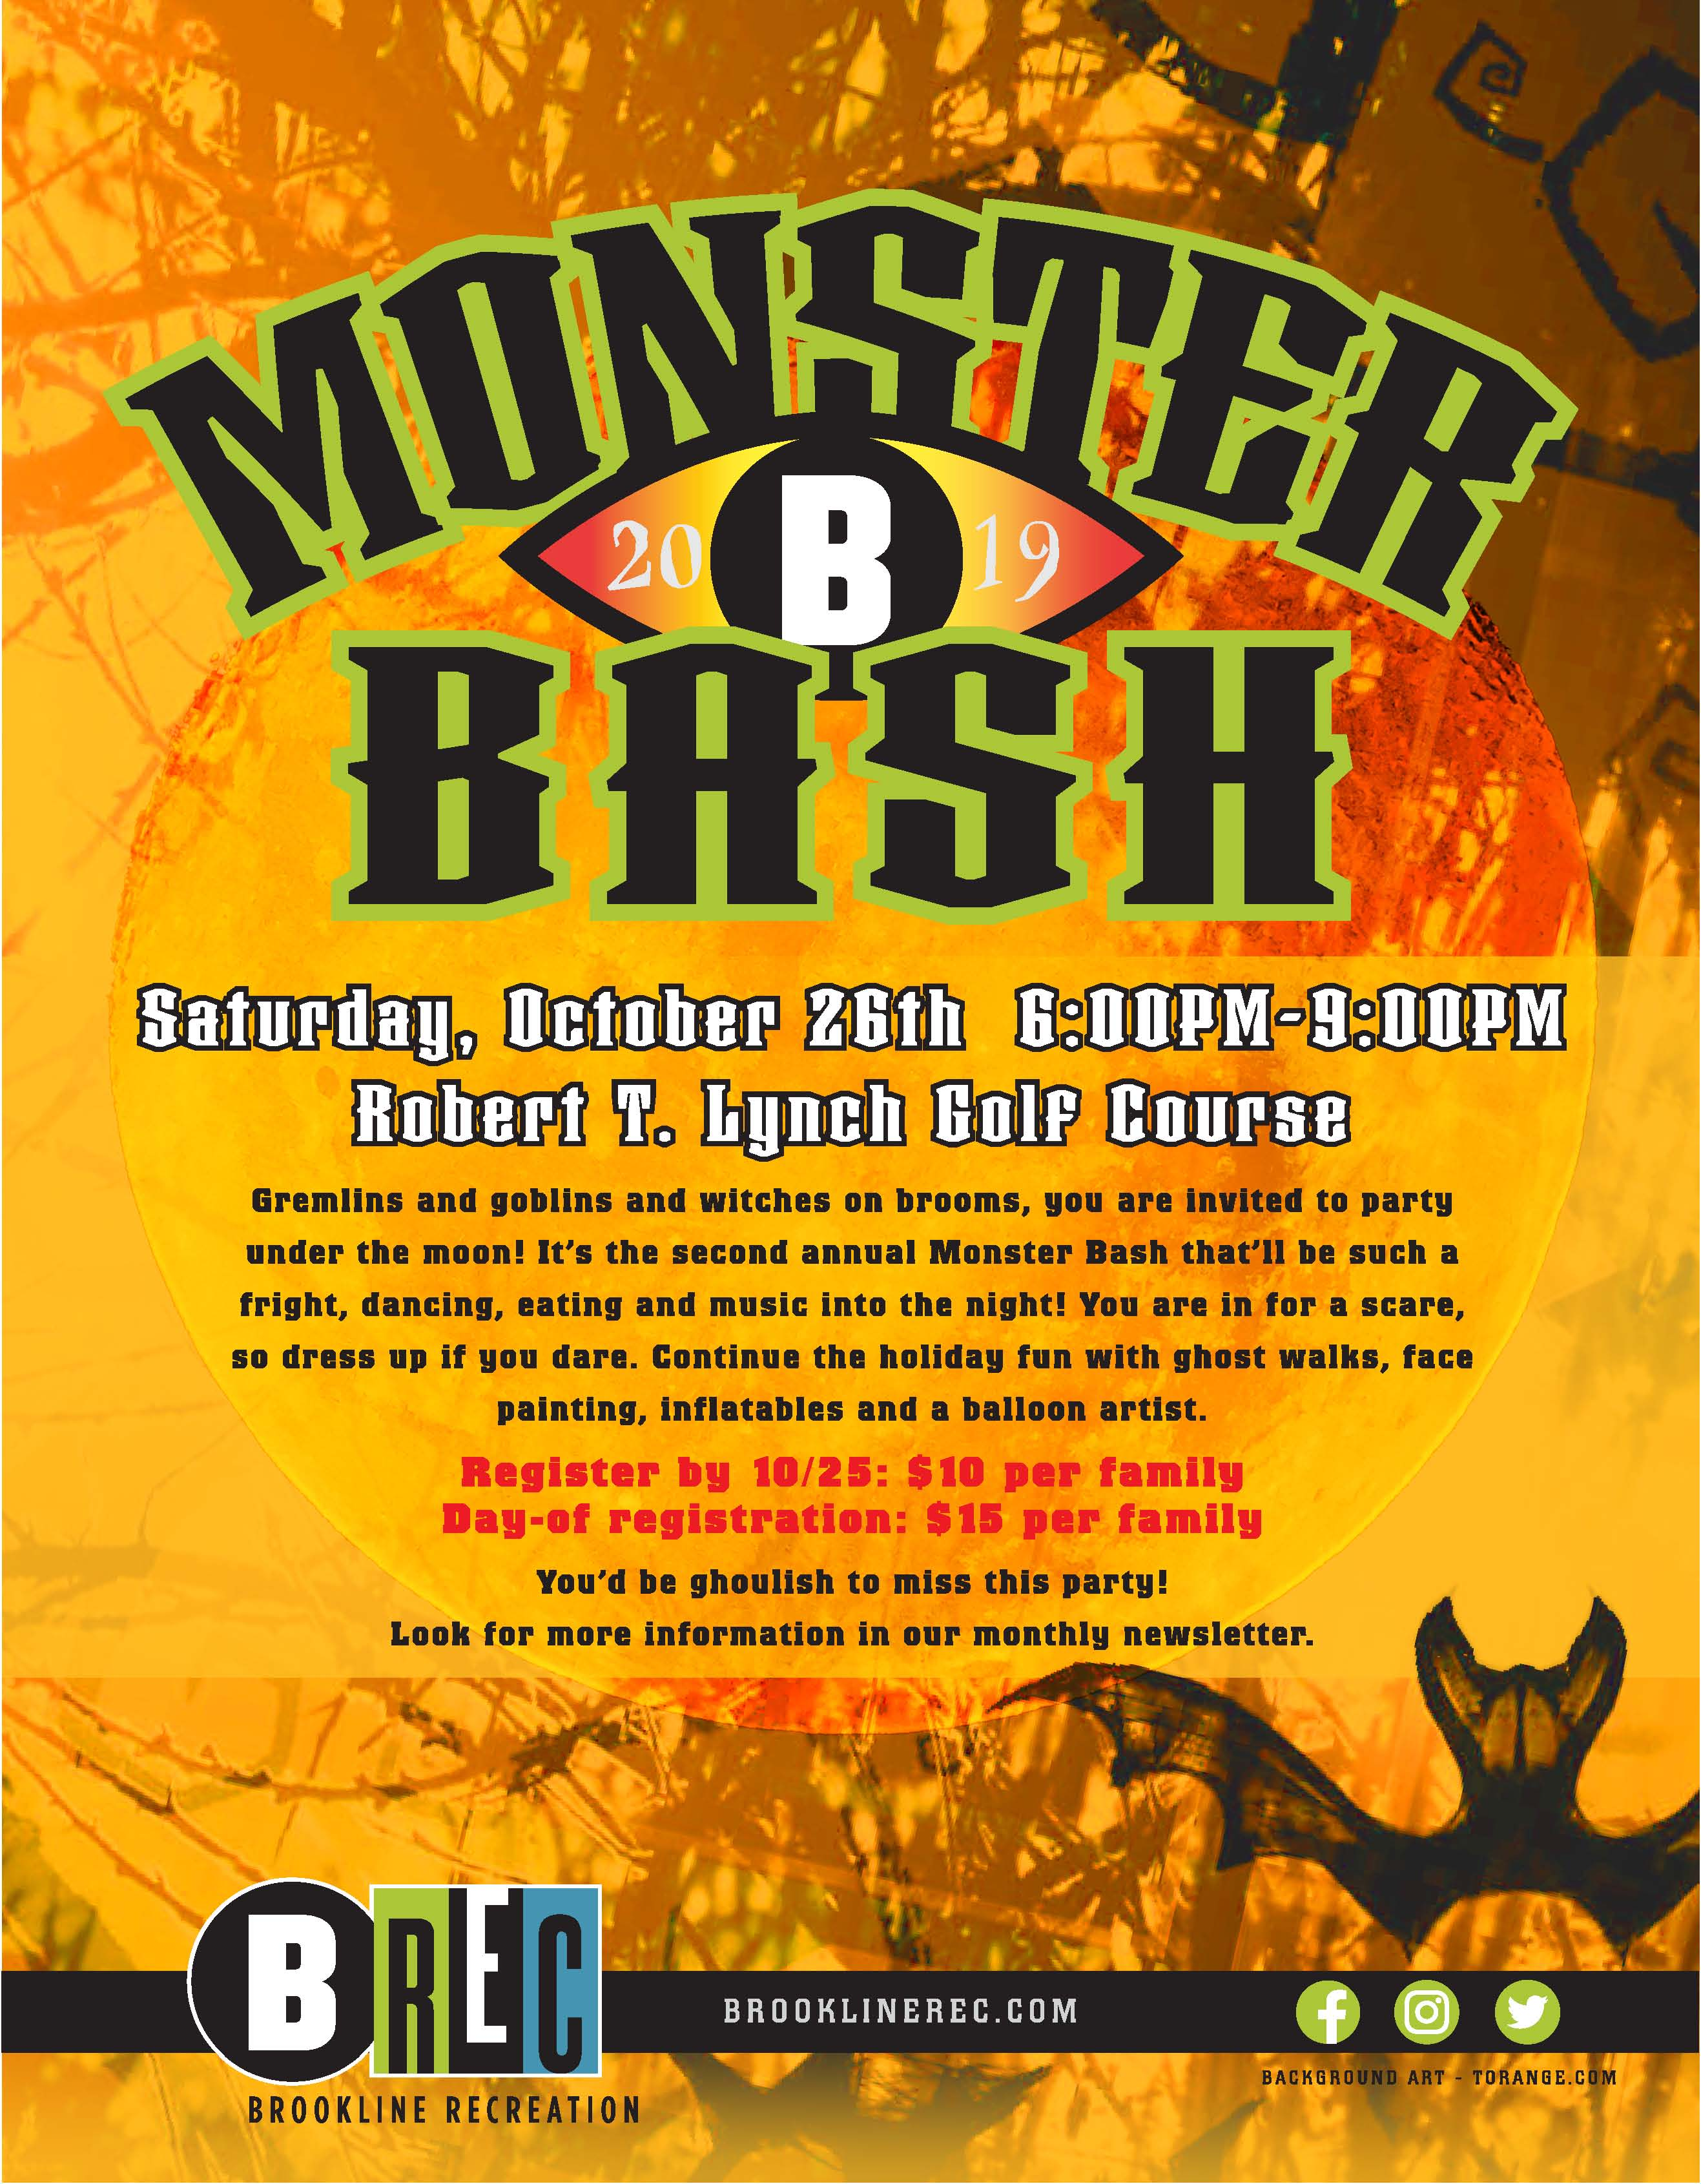 MonsterBash19